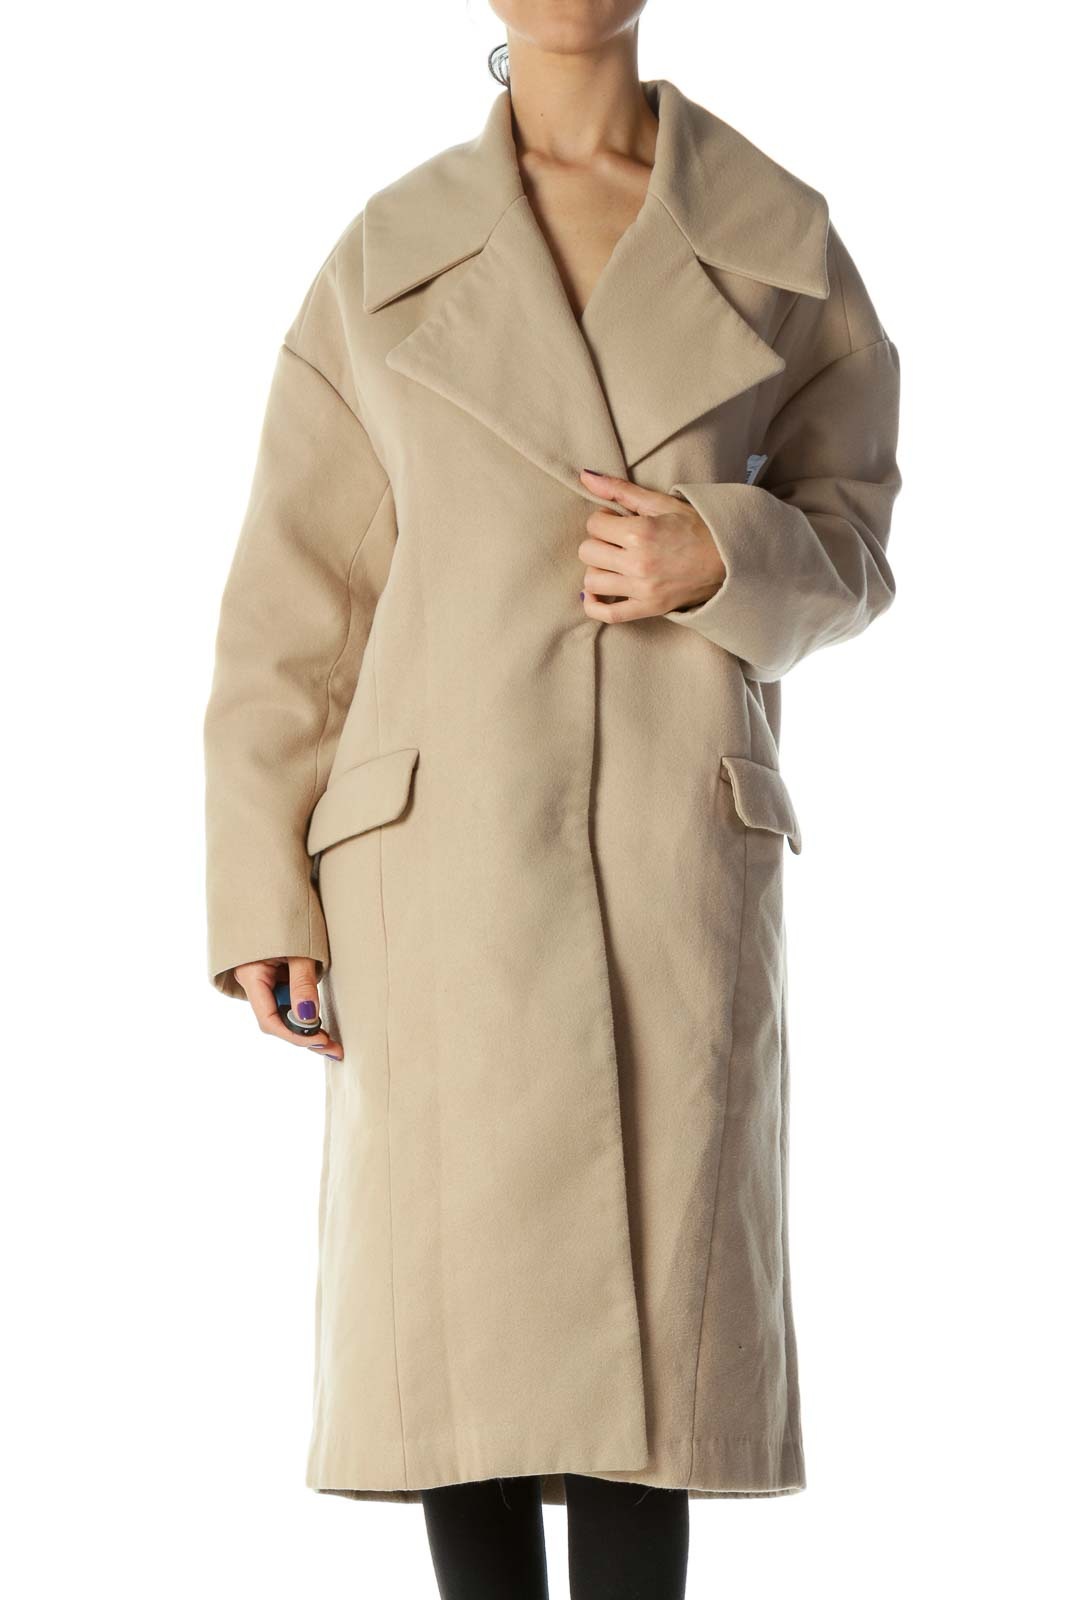 Beige Pocketed Long Single Breasted Coat Front